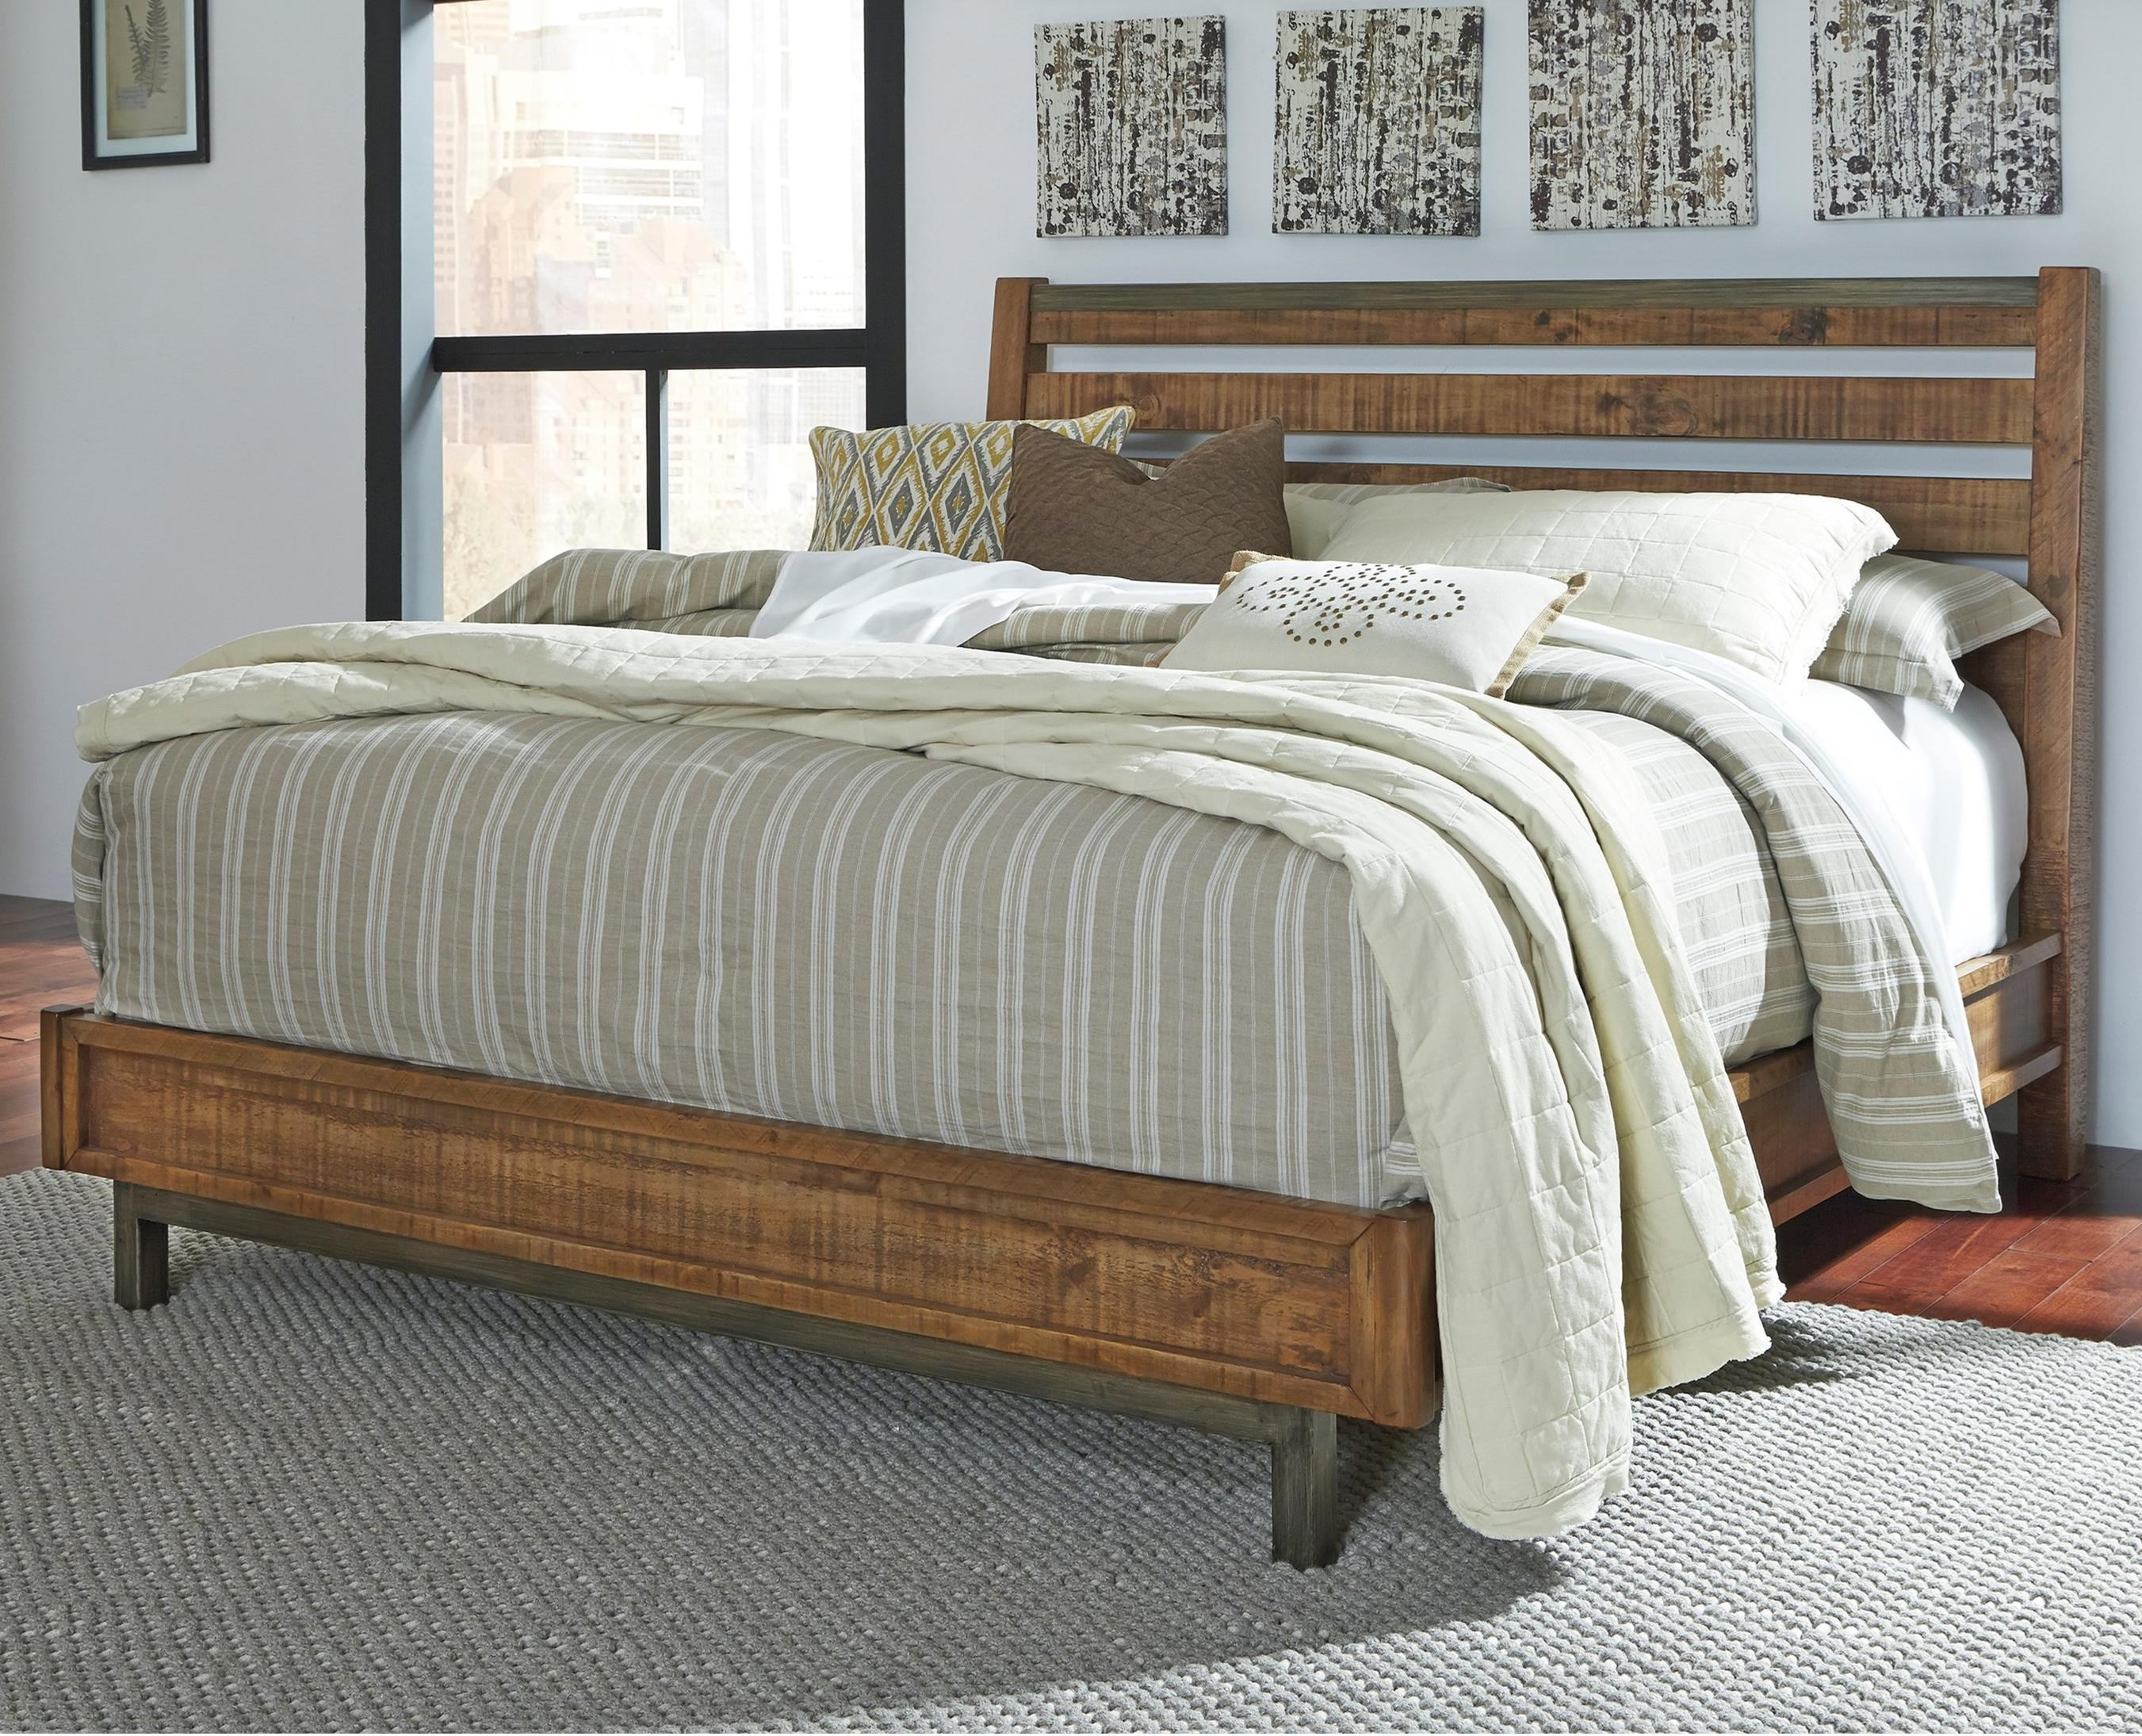 Signature Design by Ashley Dondie Queen Bed with Sleigh Headboard - Item Number: B663-57+54